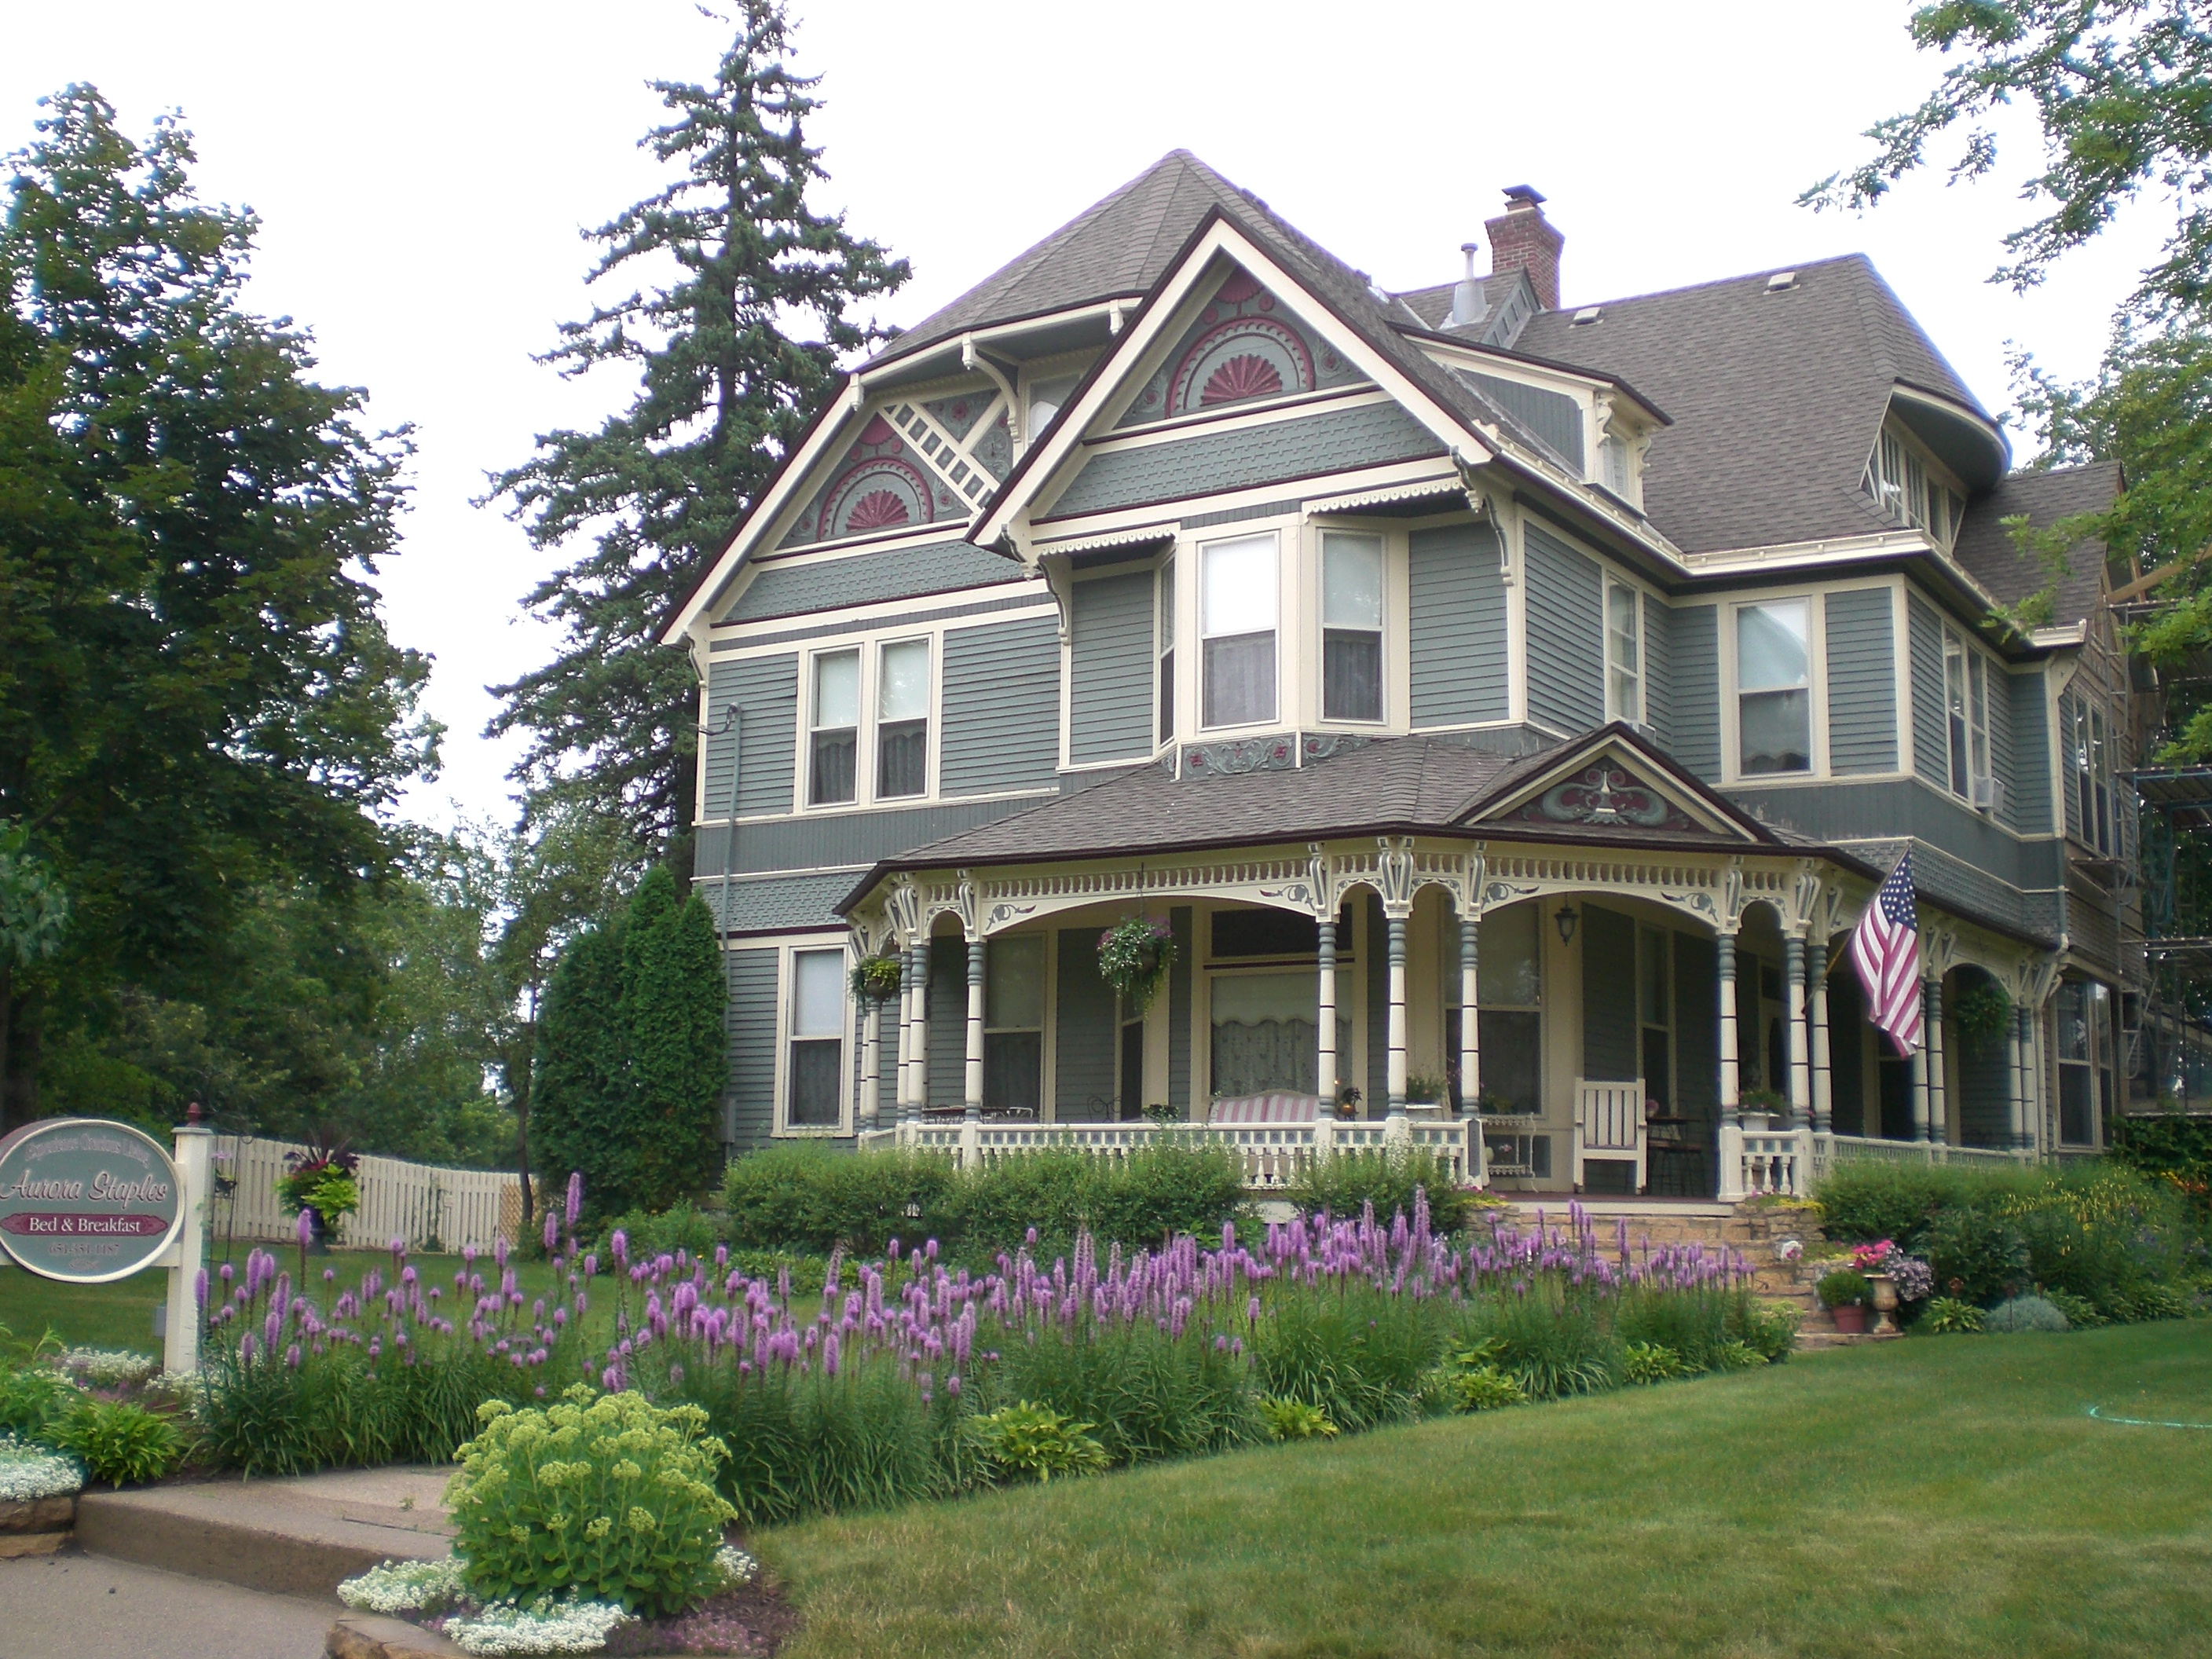 Aurora Staples Bed and Breakfast 57